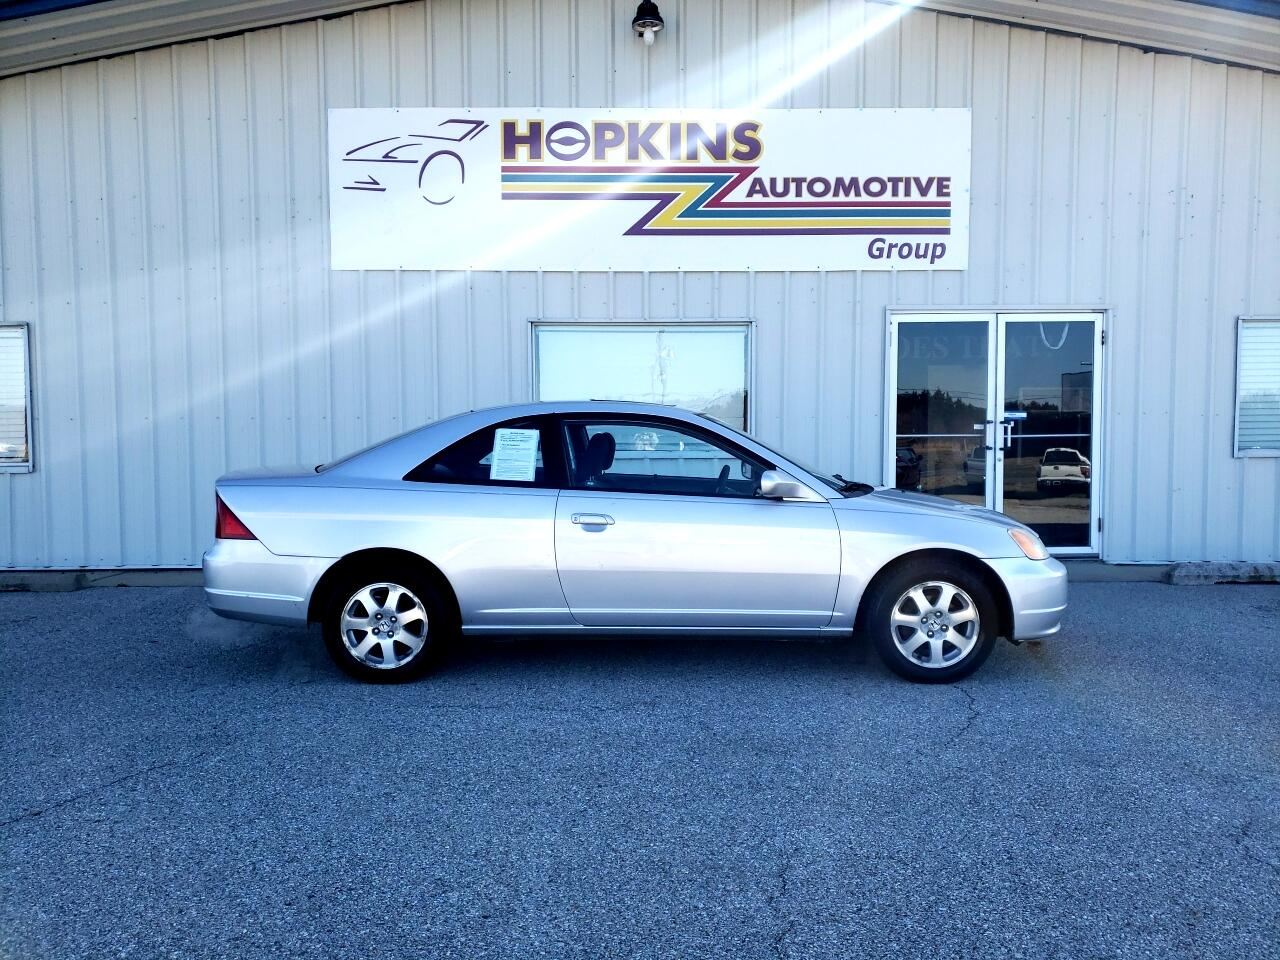 2003 Honda Civic 2dr Cpe EX Auto w/Side Airbags